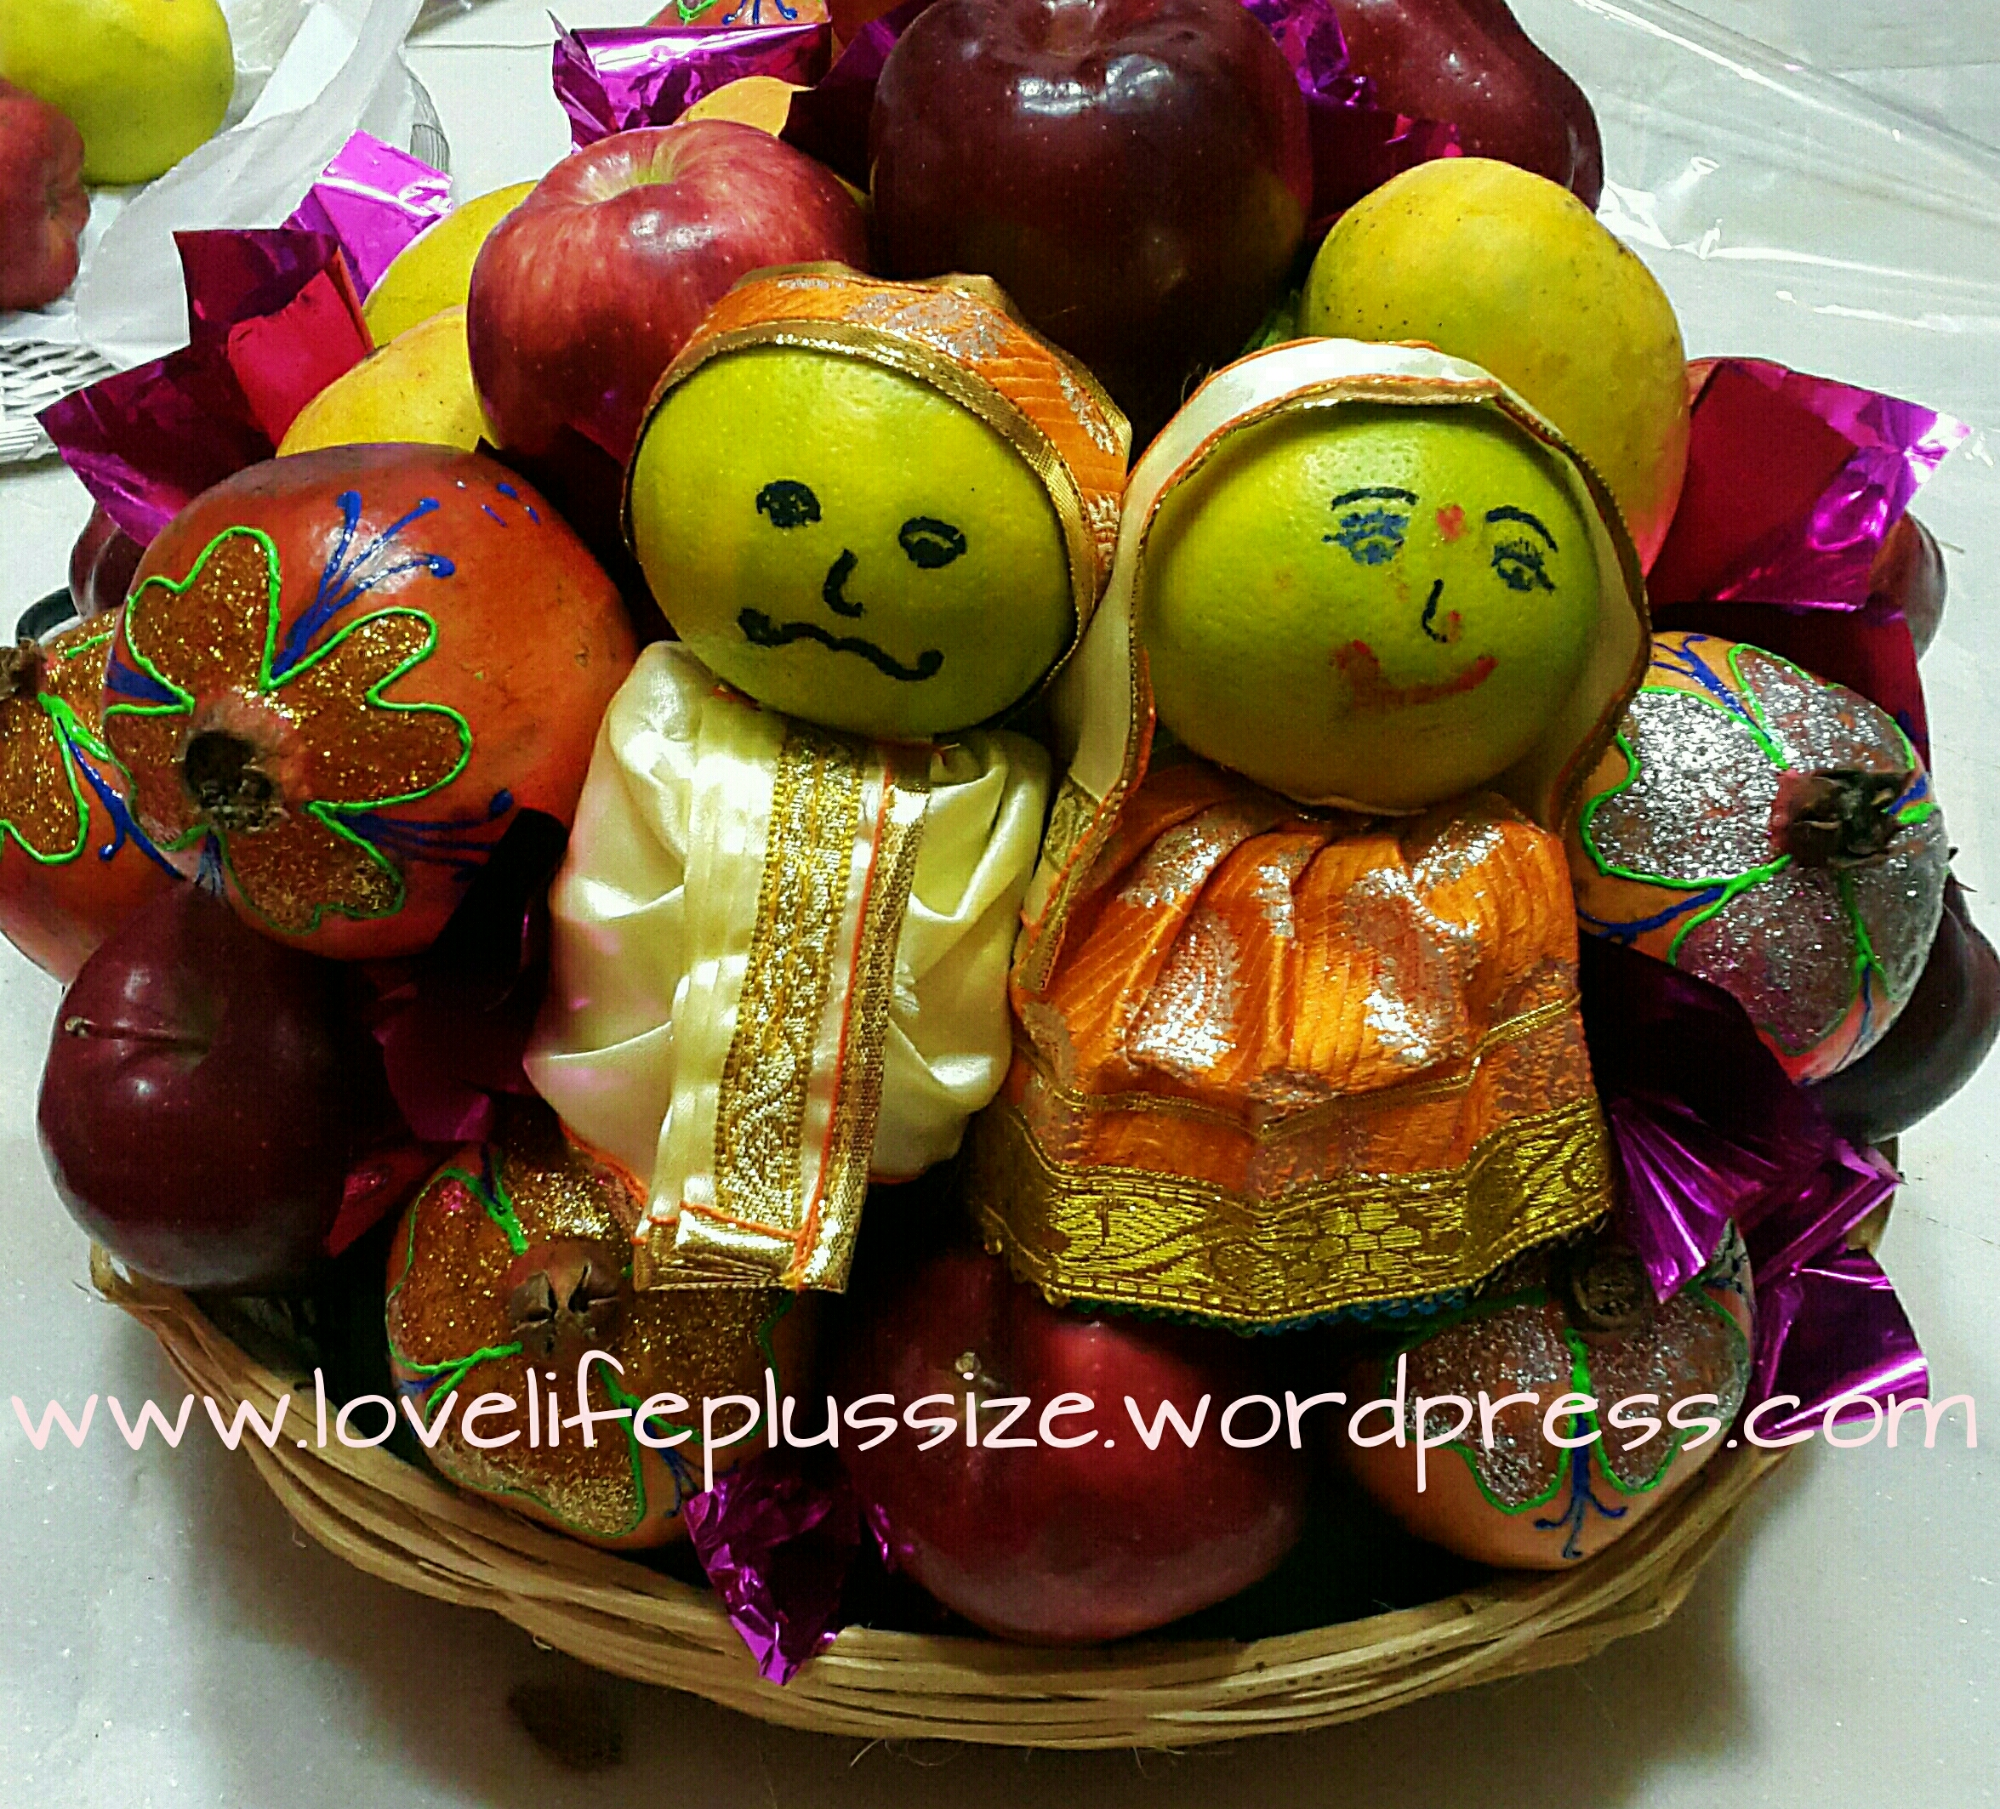 decorated fruit – love life plus size - final look of the fruit basket with decorated pomegranate and dolls